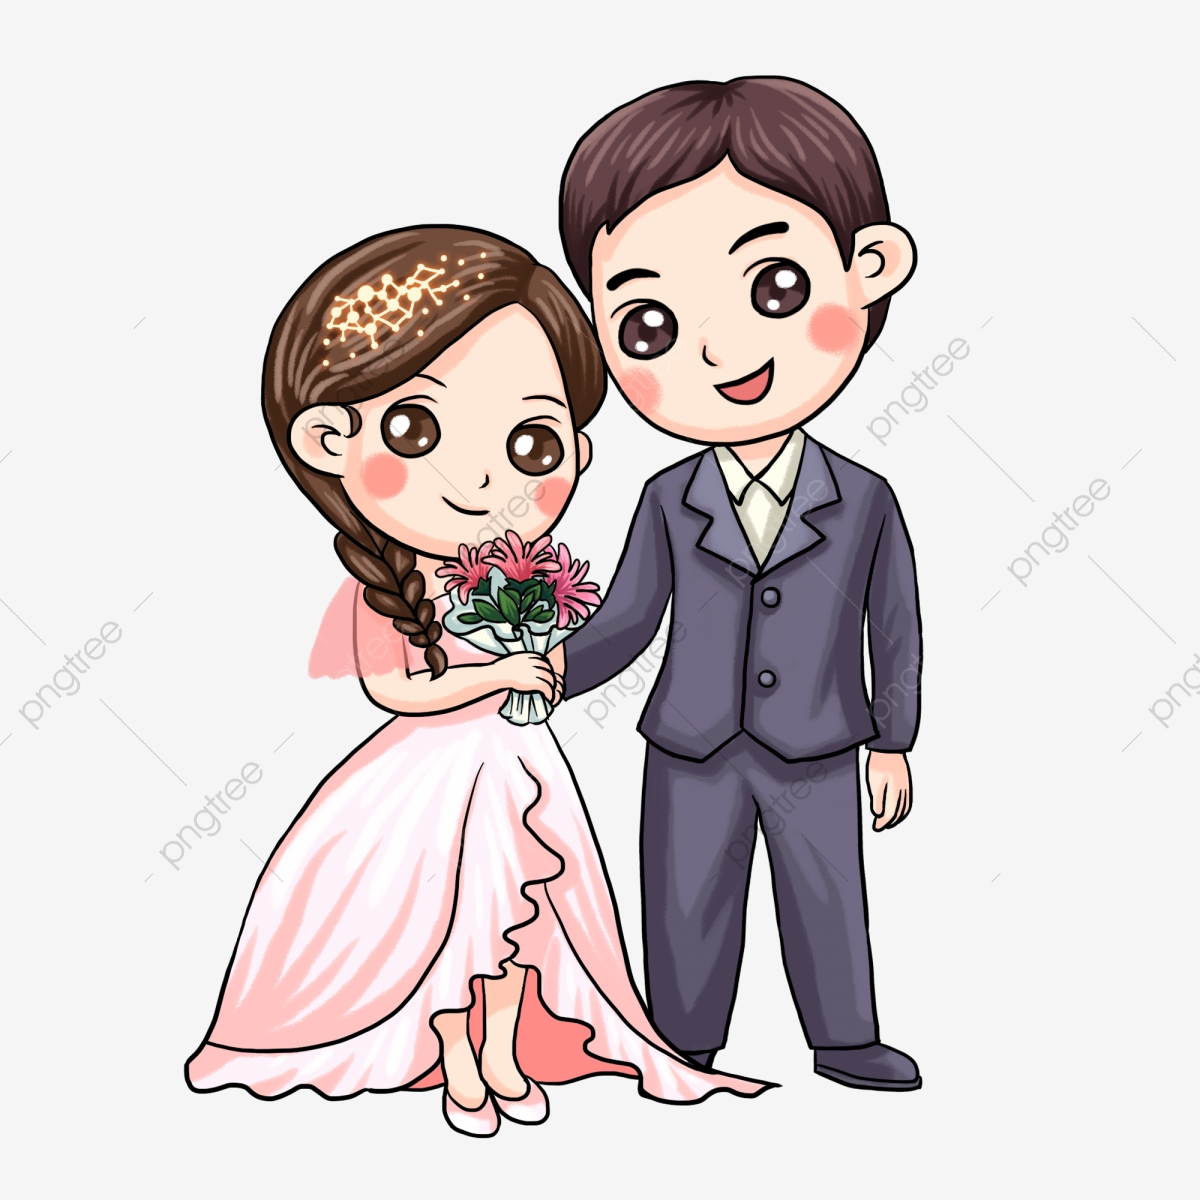 Chinese Style Cartoon Bride And Groom Wedding, Illustration, Married.